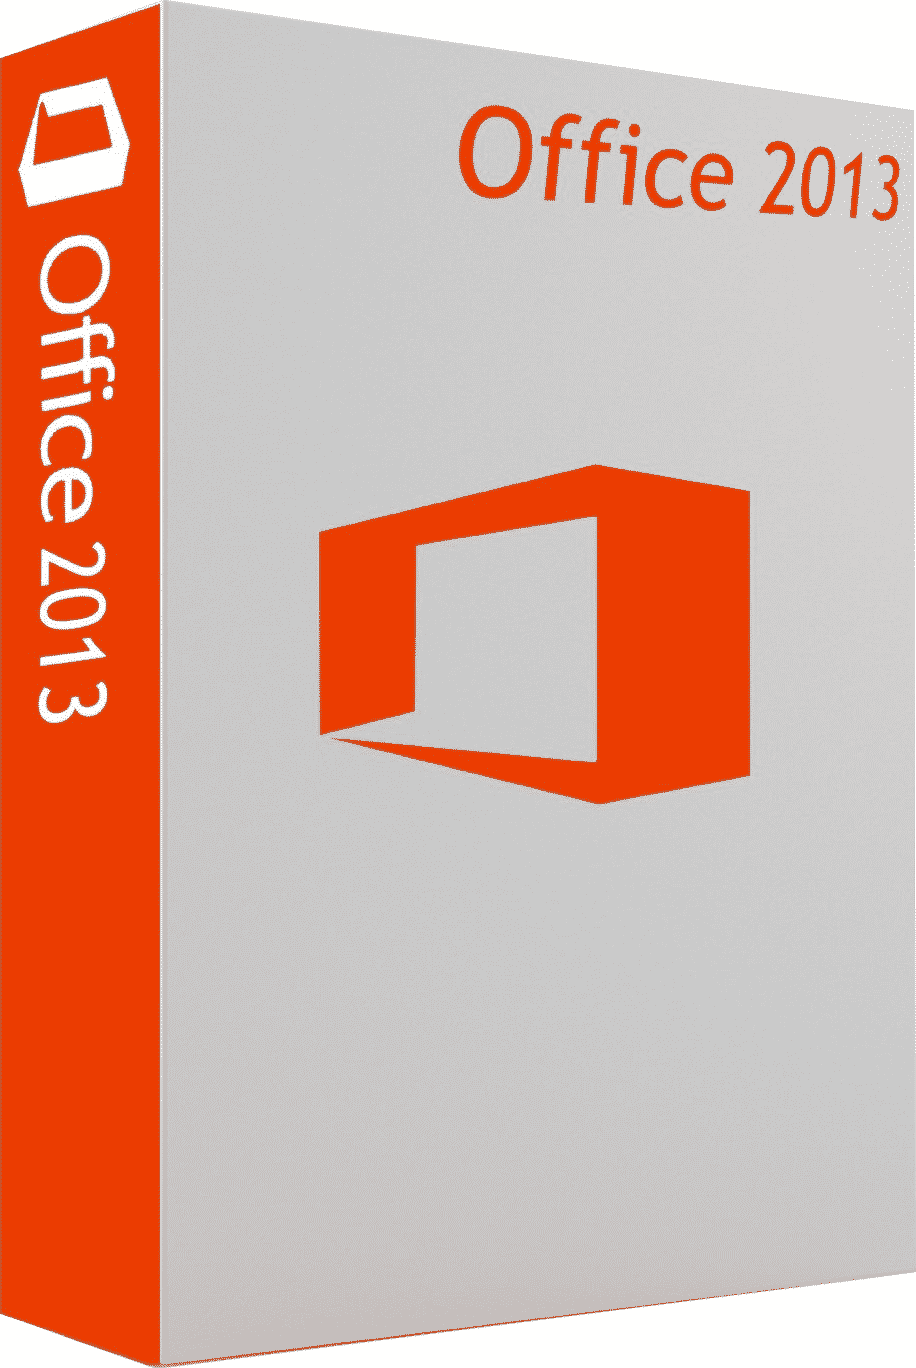 Office 2013 FINAL VL (32 y 64 Bits) PC ESPAÑO...